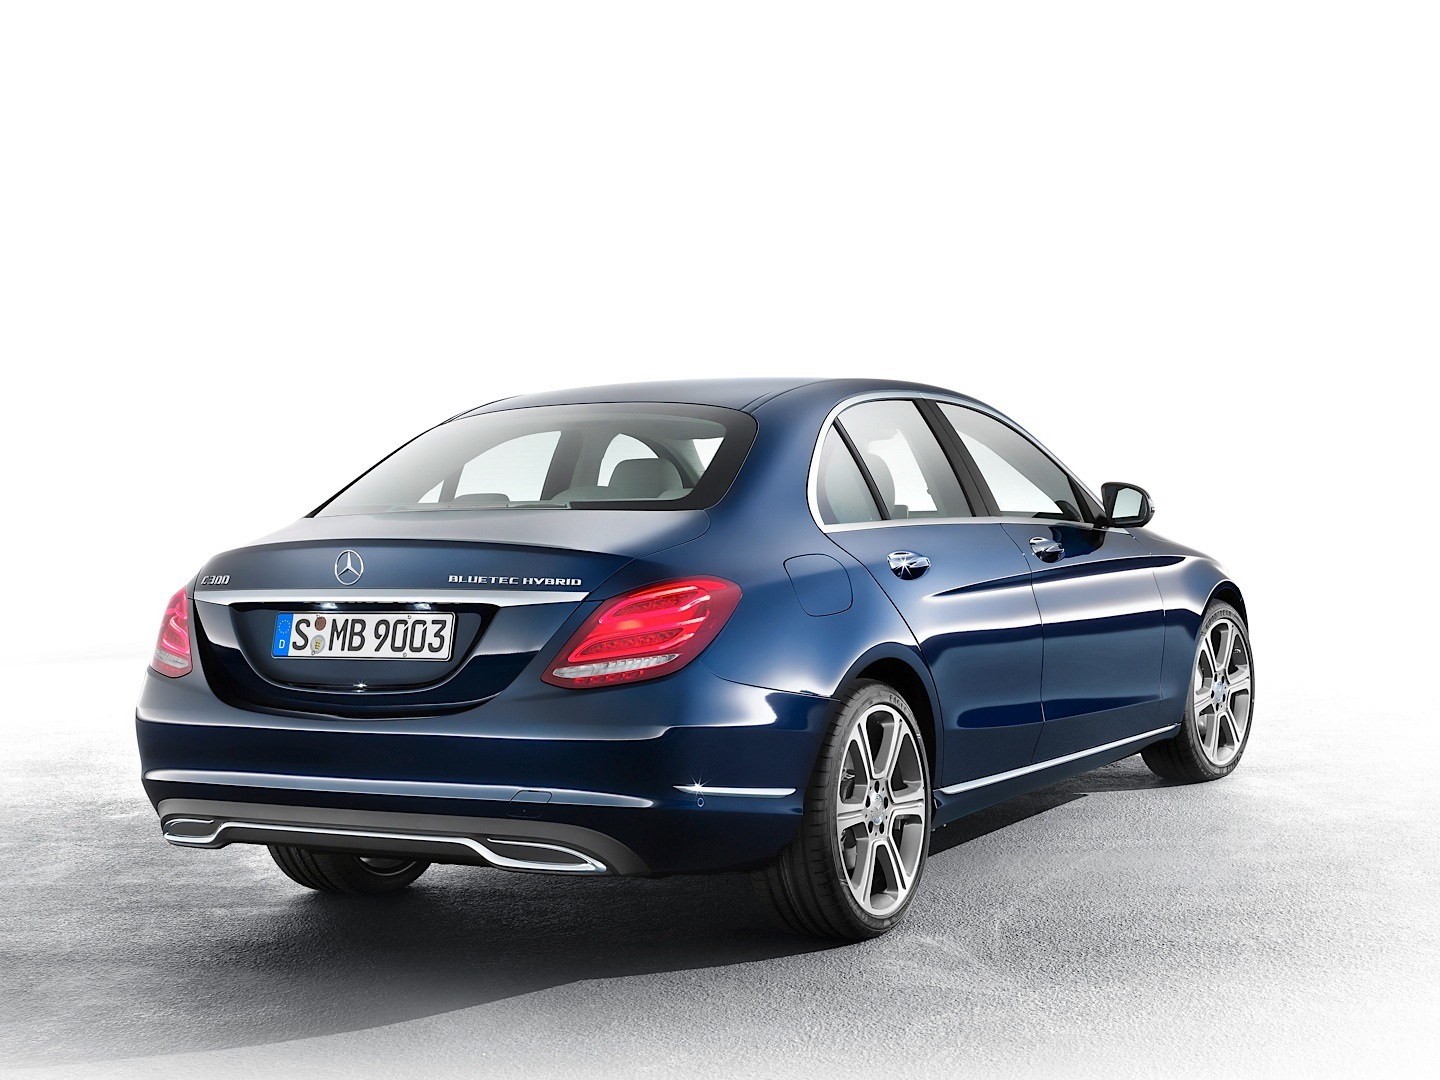 2015 mercedes benz c class w205 gets priced in the uk for What is the cheapest mercedes benz